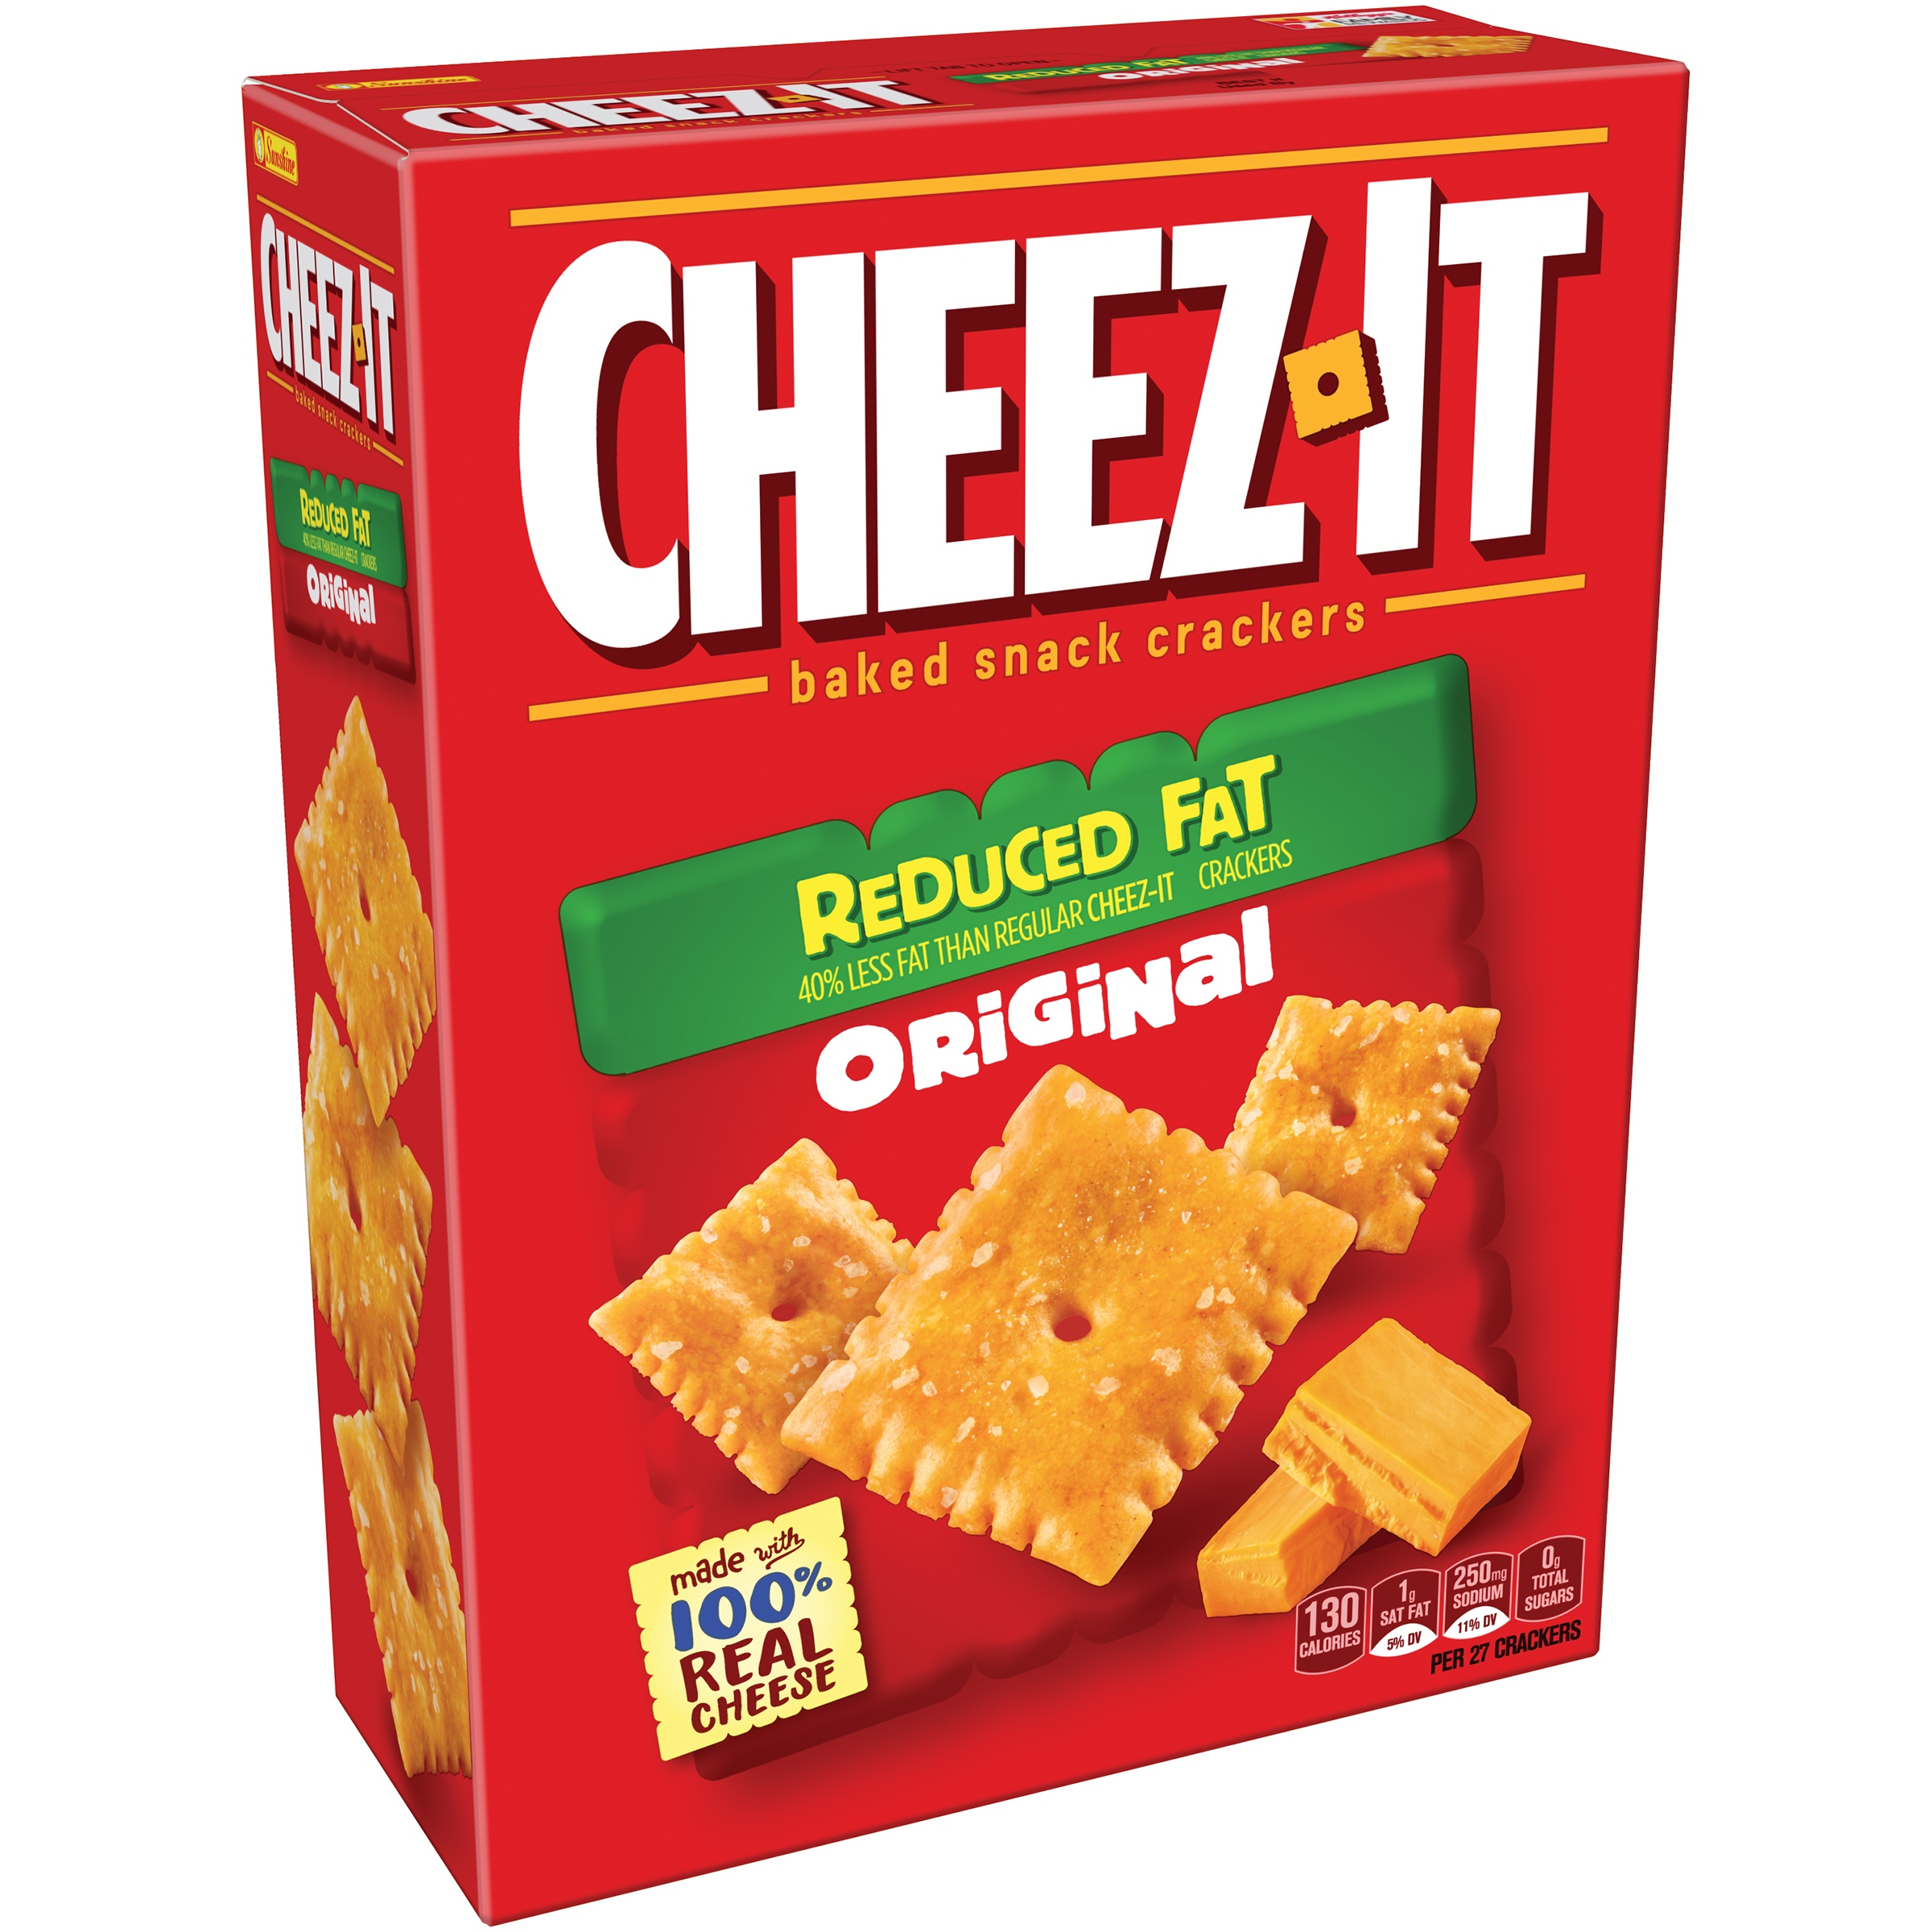 Cheez-It Reduced Fat Baked Snack Crackers, 11.5 oz by Sunshine Biscuits, LLC